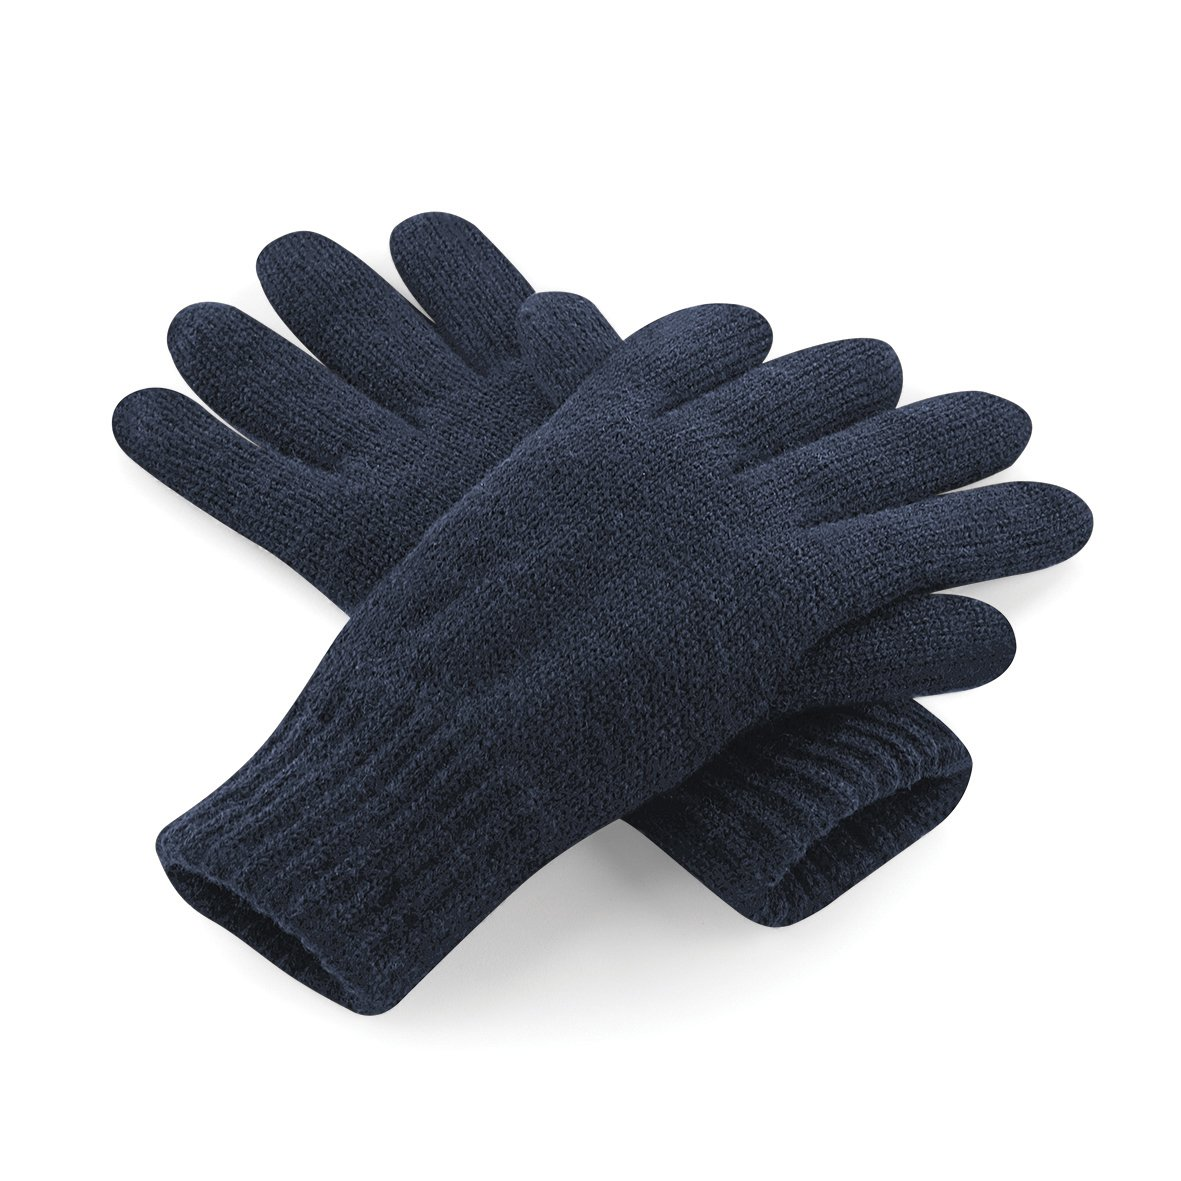 Beechfield Unisex Classic Thinsulate Thermal Winter Gloves (L/XL) (French Navy) UTRW3671_3